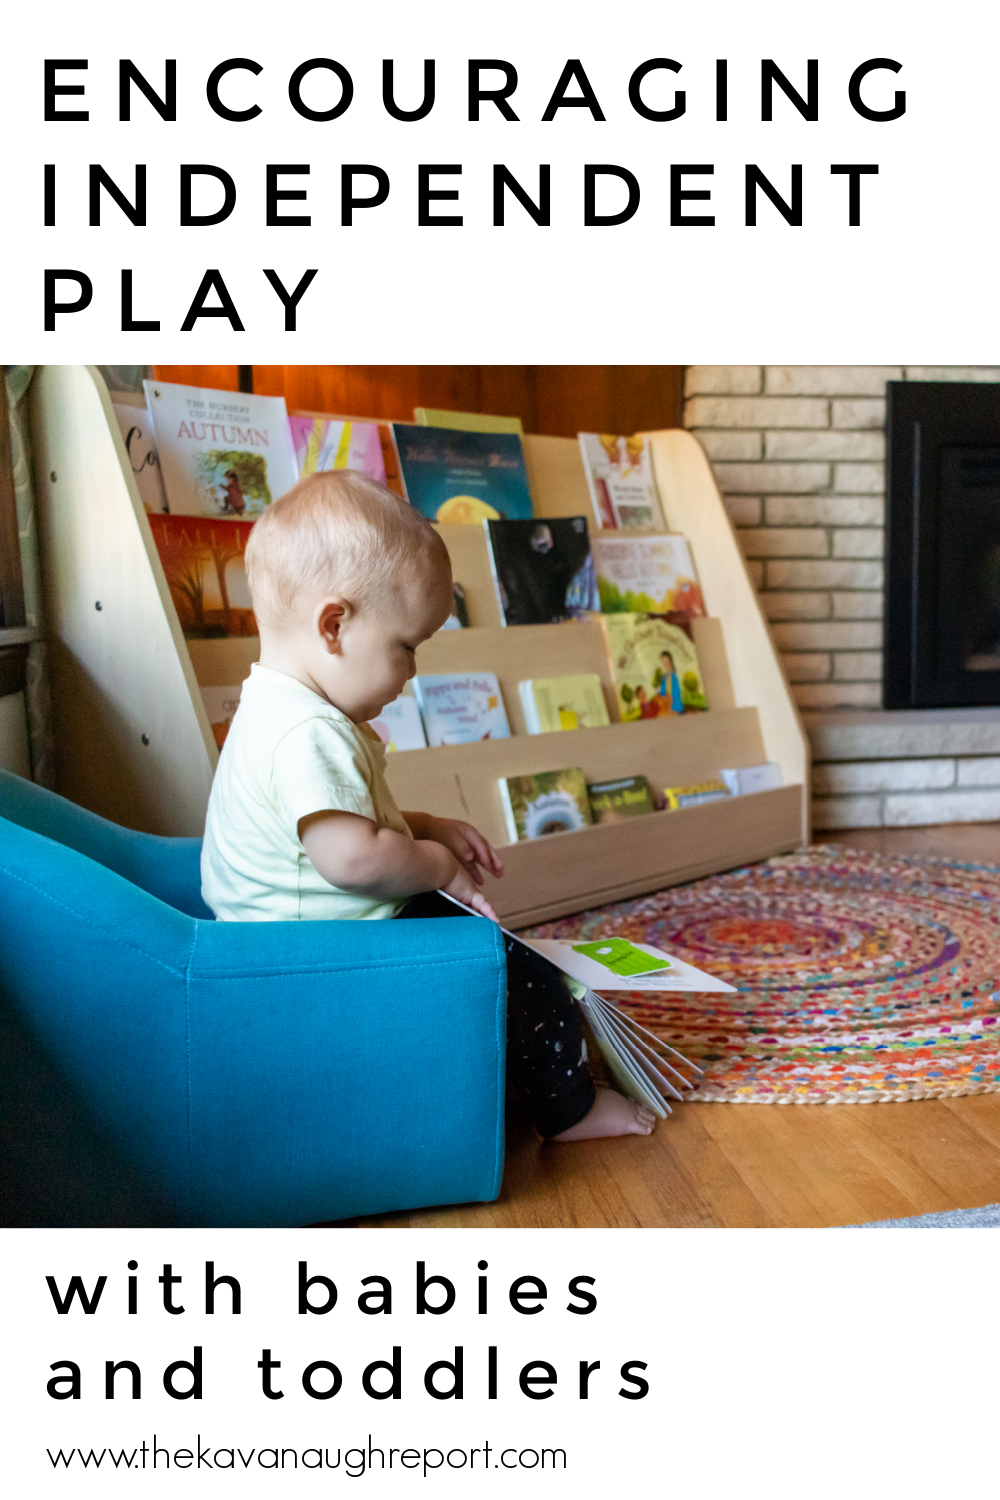 Montessori parenting advice to encourage babies and toddlers to play more independently. Here are some tips to keep in mind for playtime.